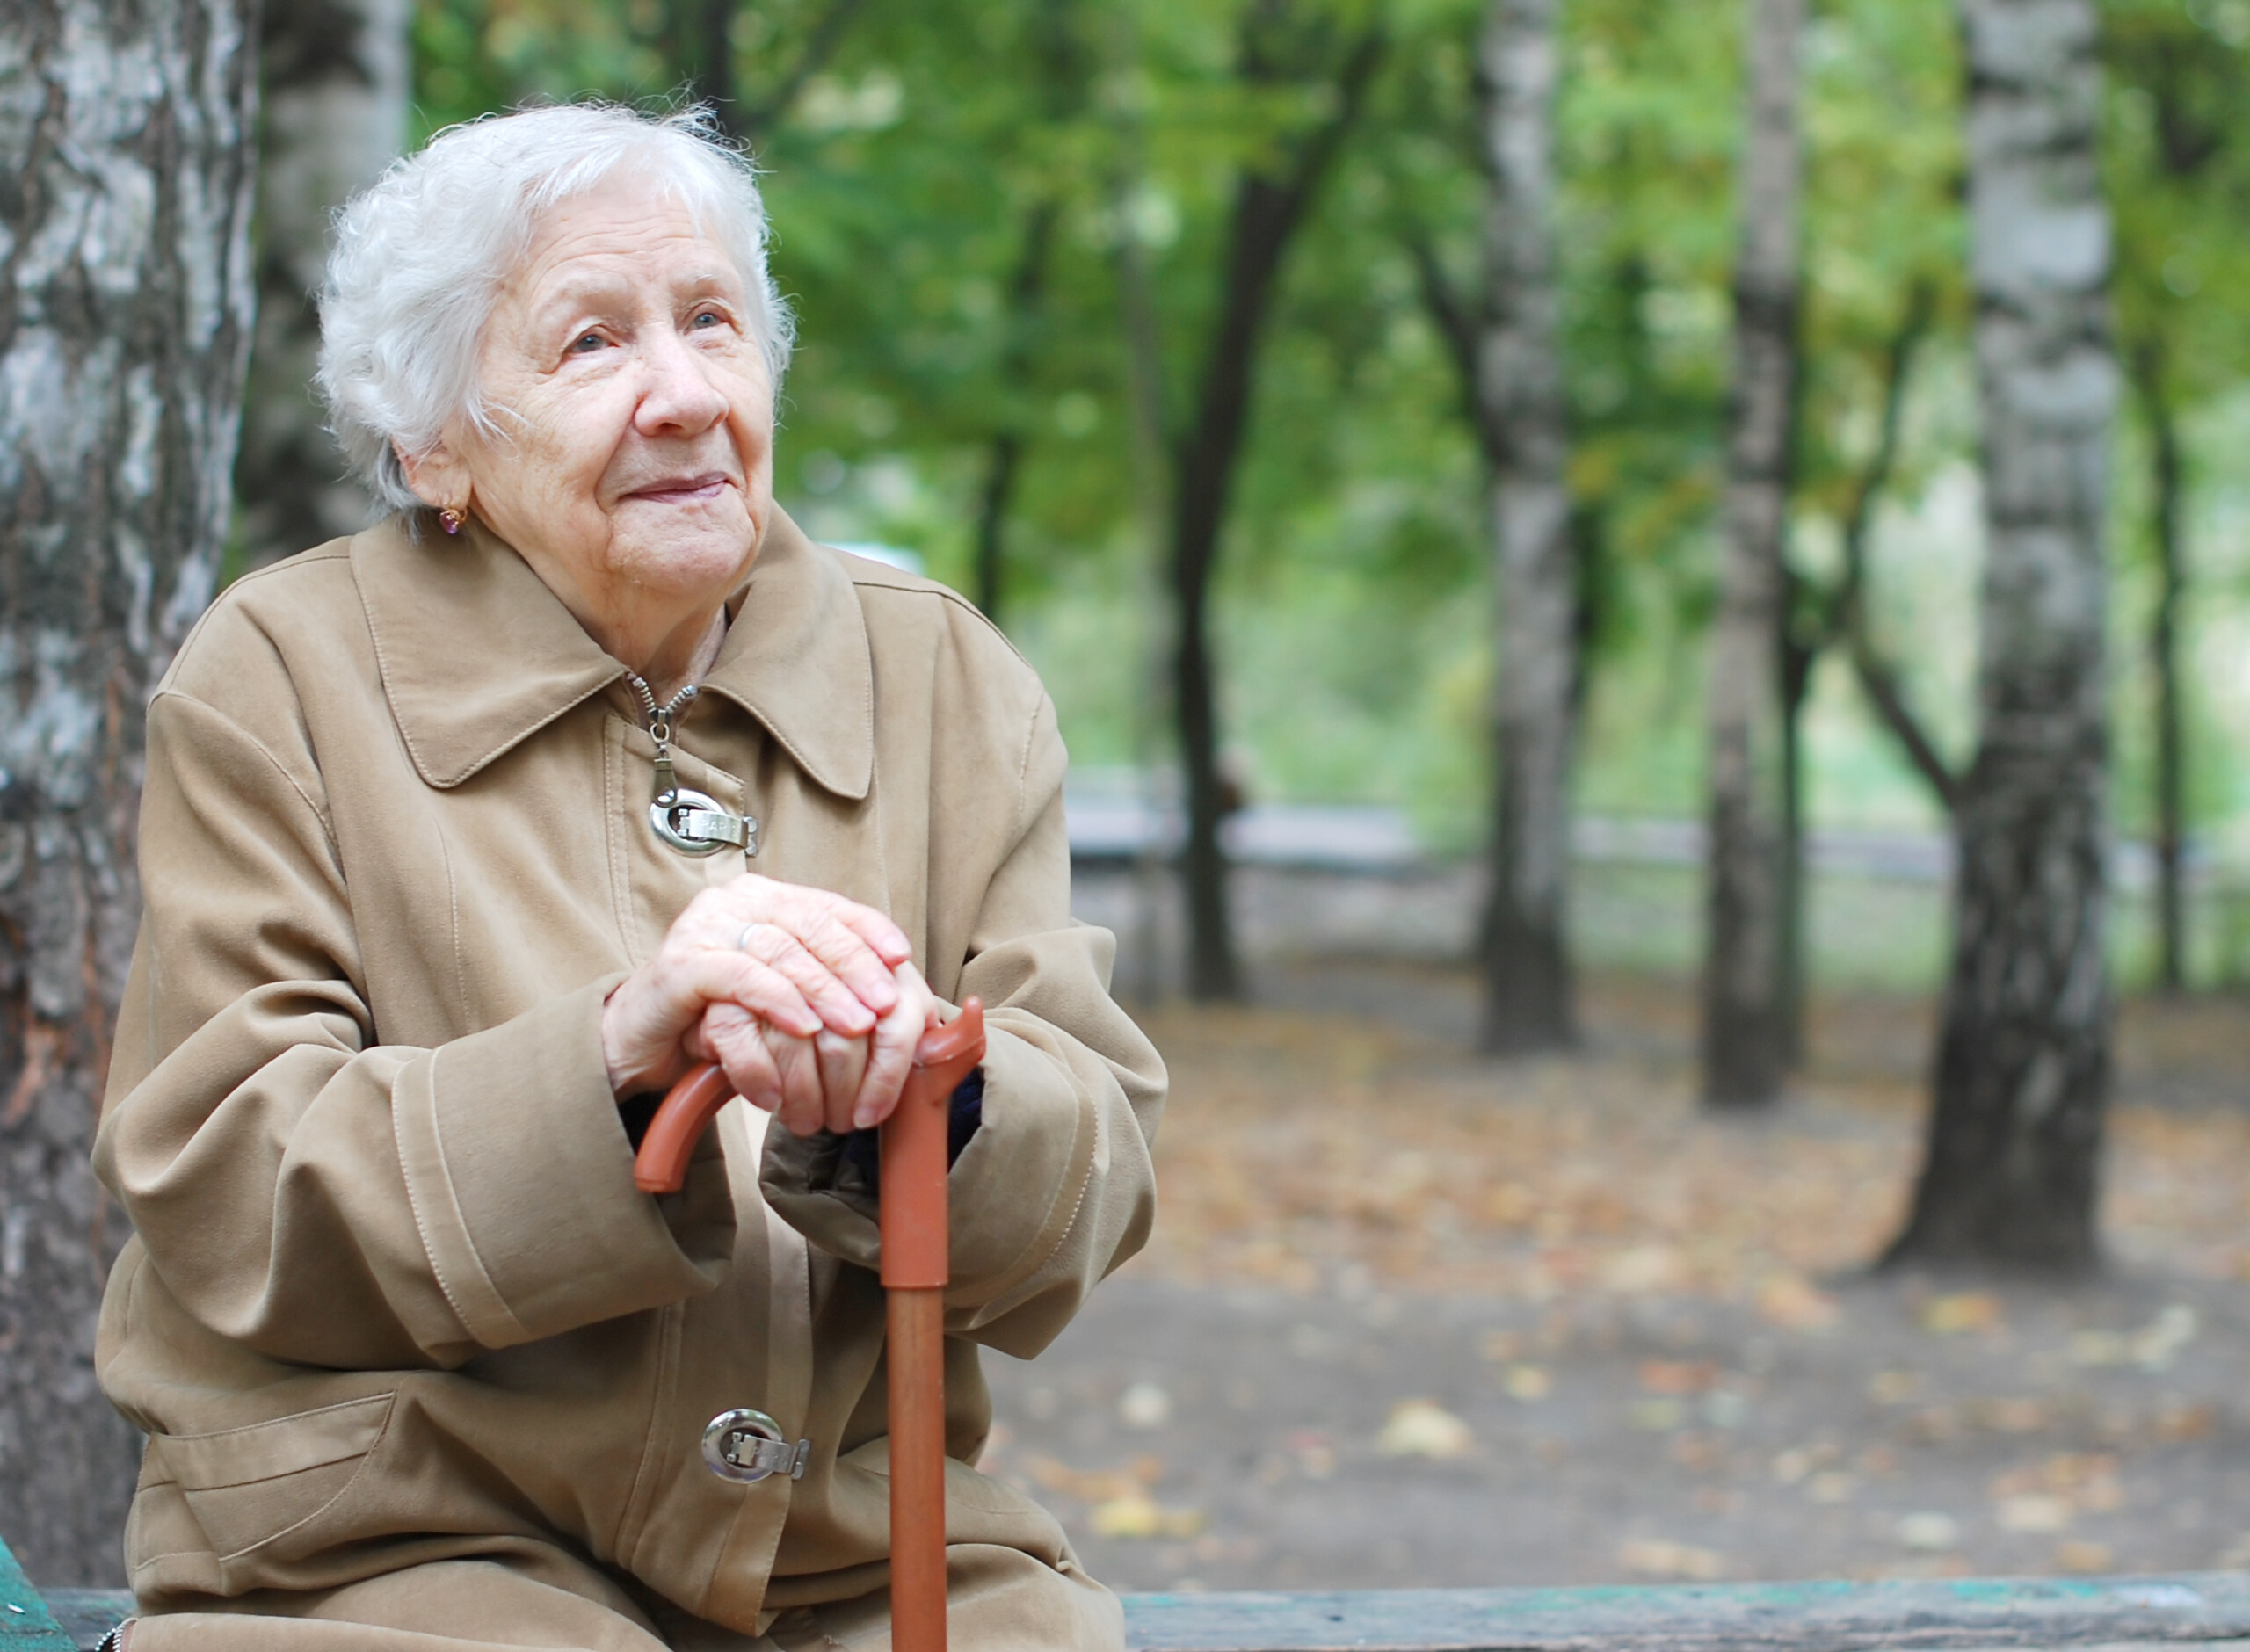 Are Epidural Injections Safe for the Elderly?